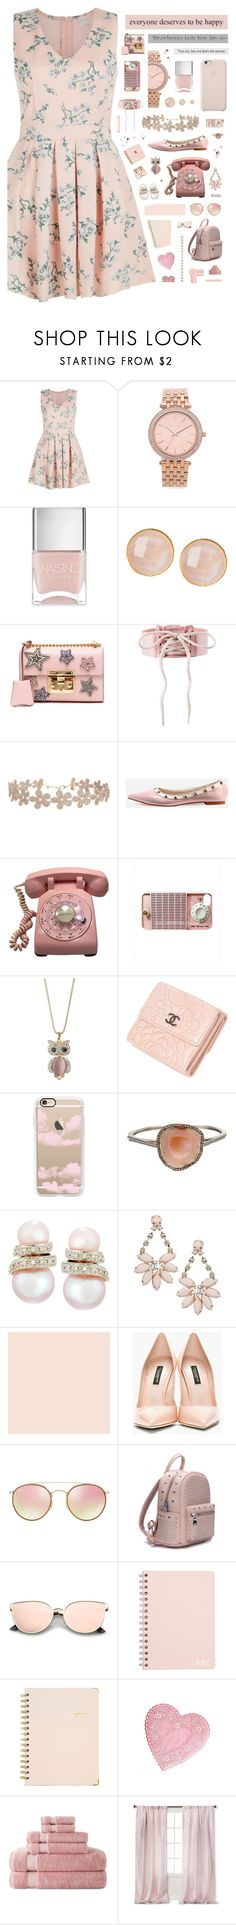 """""""1007"""" by glitterals ❤ liked on Polyvore featuring New Look, Michael Kors, Nails Inc., Saachi, Gucci, Puma, Humble Chic, Retrò, Wallis and Chanel"""